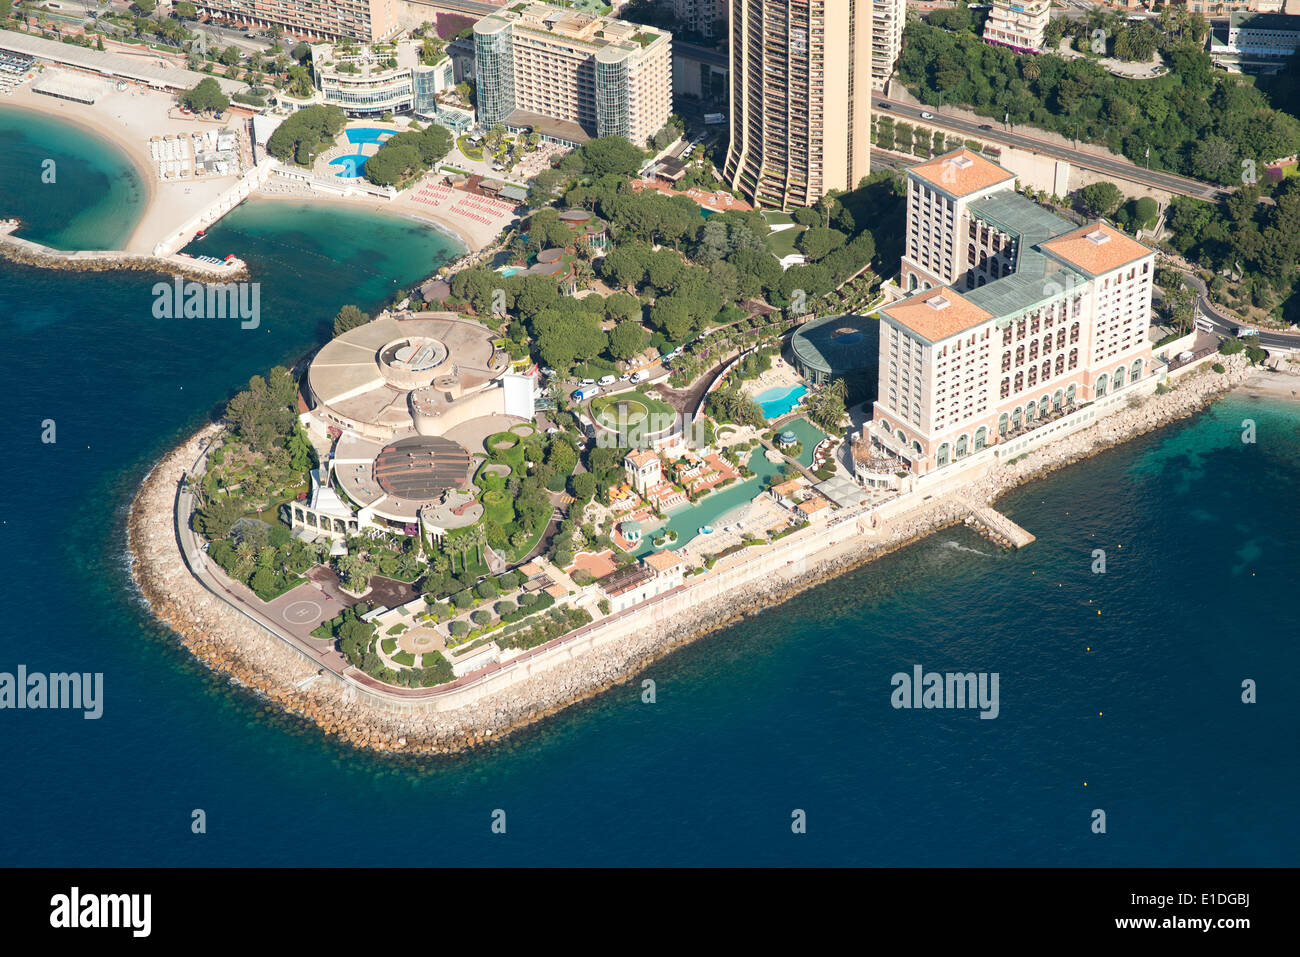 monte carlo bay hotel and resort built on reclaimed land aerial stock photo royalty free. Black Bedroom Furniture Sets. Home Design Ideas